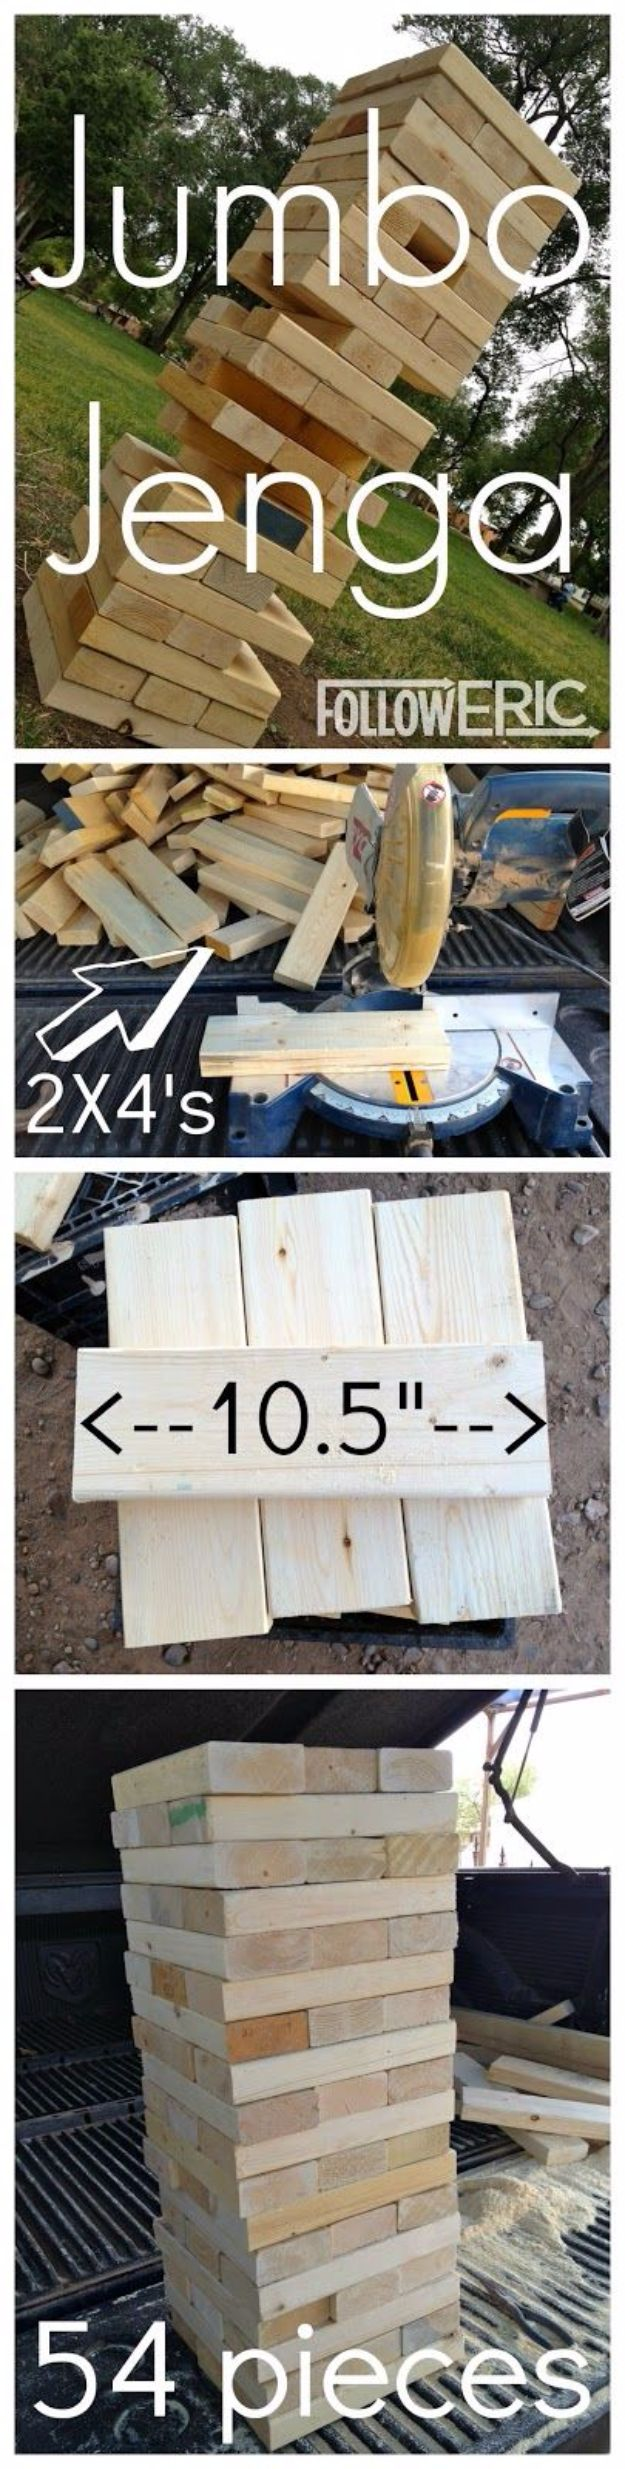 Best DIY Backyard Games - Jumbo Jenga - Cool DIY Yard Game Ideas for Adults, Teens and Kids - Easy Tutorials for Cornhole, Washers, Jenga, Tic Tac Toe and Horseshoes - Cool Projects for Outdoor Parties and Summer Family Fun Outside http://diyjoy.com/diy-backyard-games